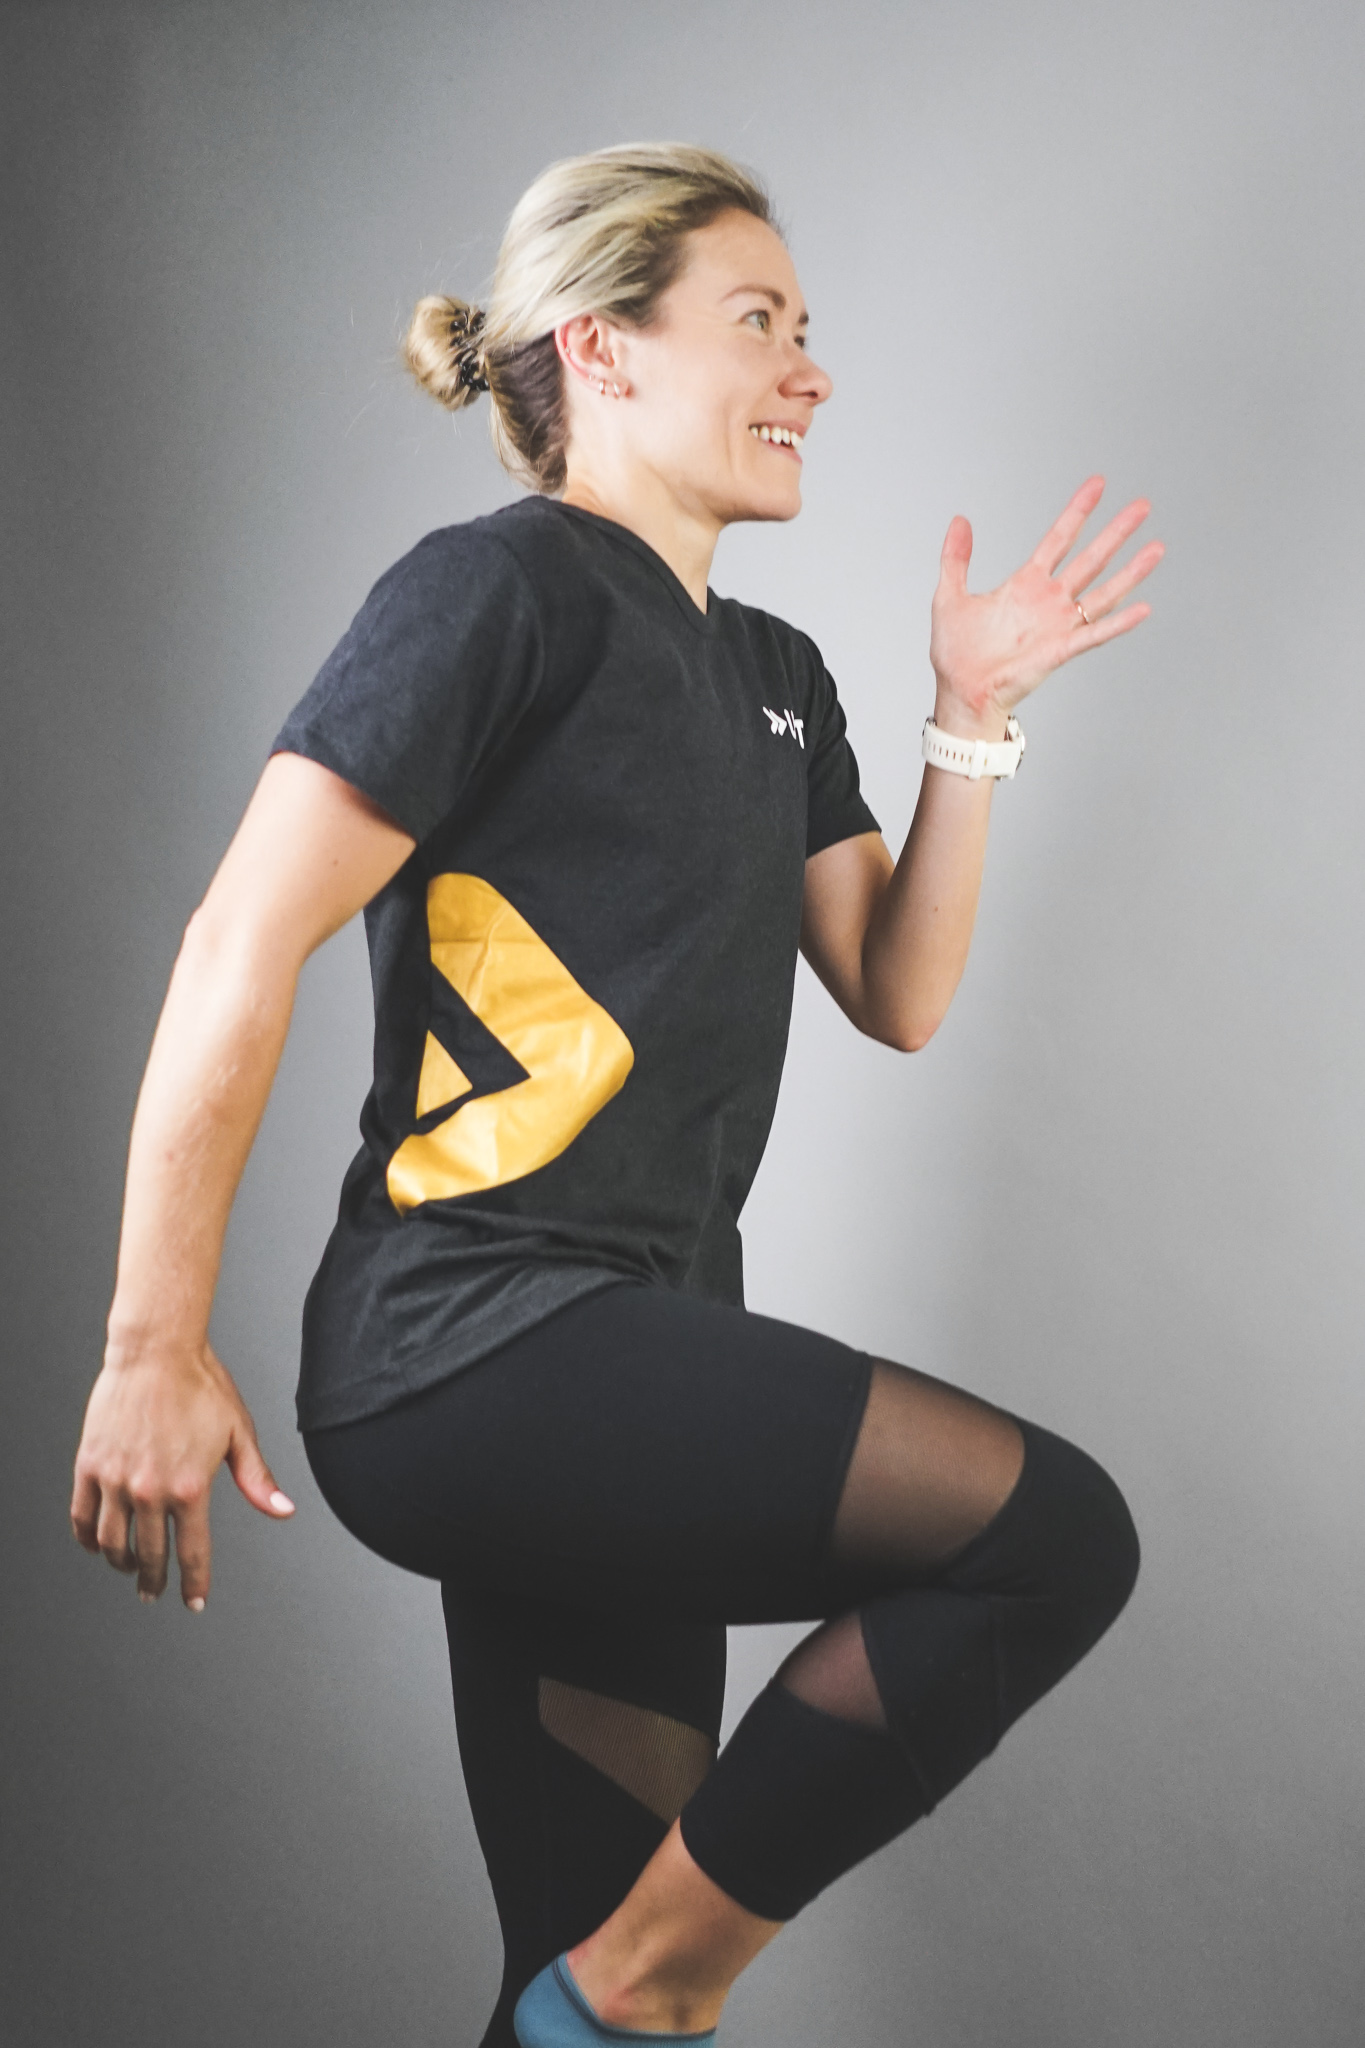 Maire UFIT Physiotherapist